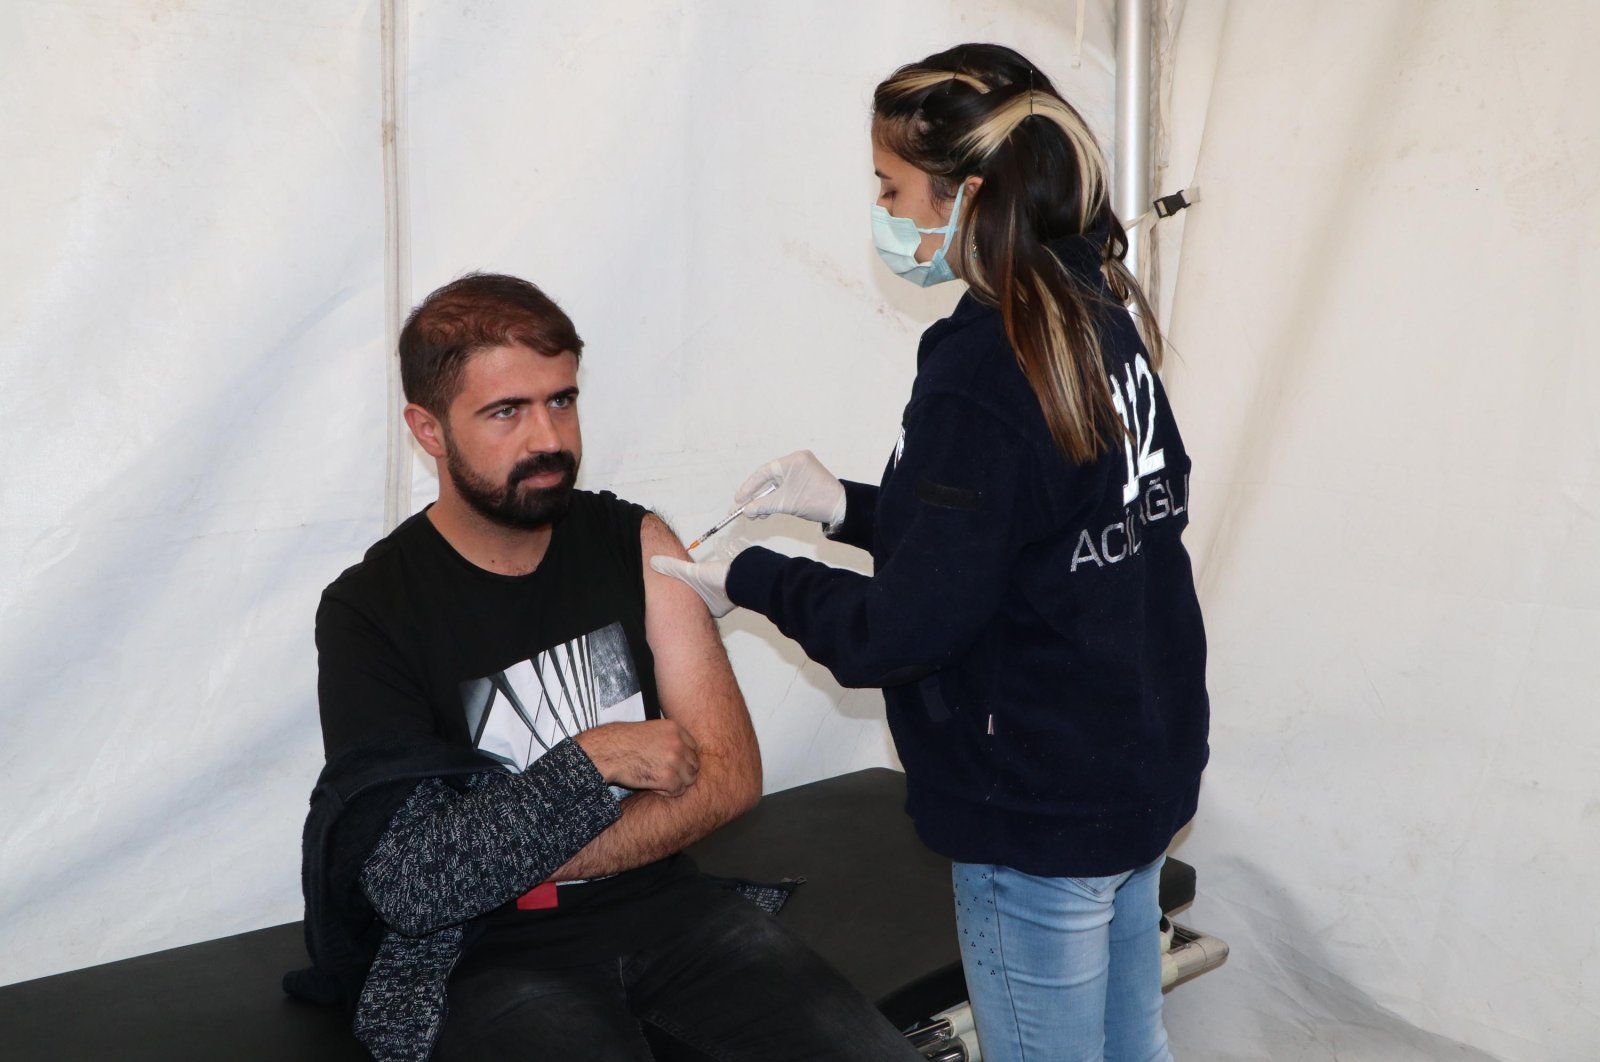 A man gets vaccinated against COVID-19 at a vaccination tent, in Van, eastern Turkey, Oct. 6, 2021. (DHA PHOTO)